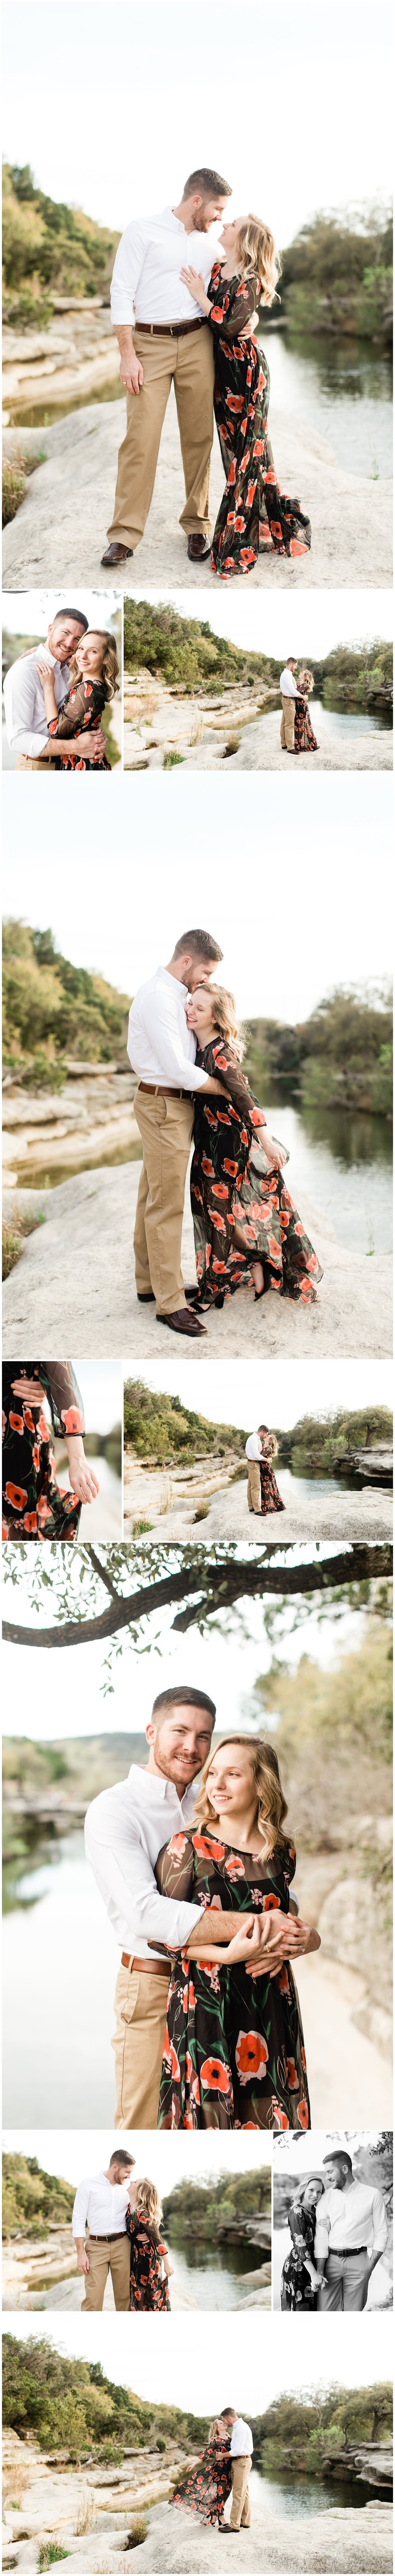 Bull_Creek_Engagement_Session_0005.jpg